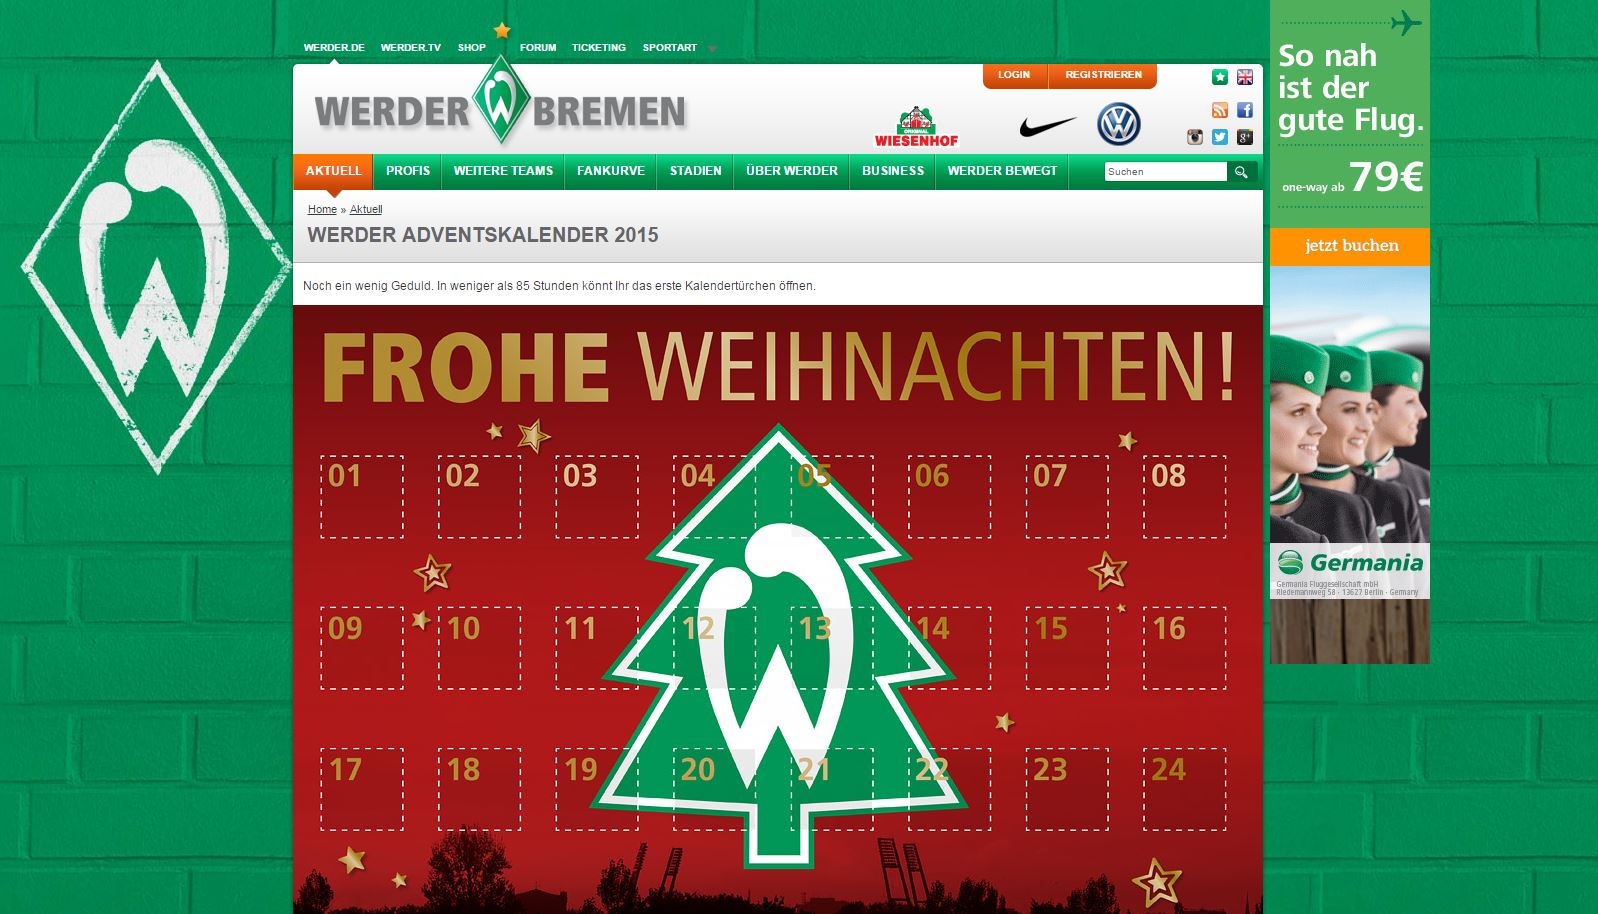 werder bremen adventskalender 2015. Black Bedroom Furniture Sets. Home Design Ideas